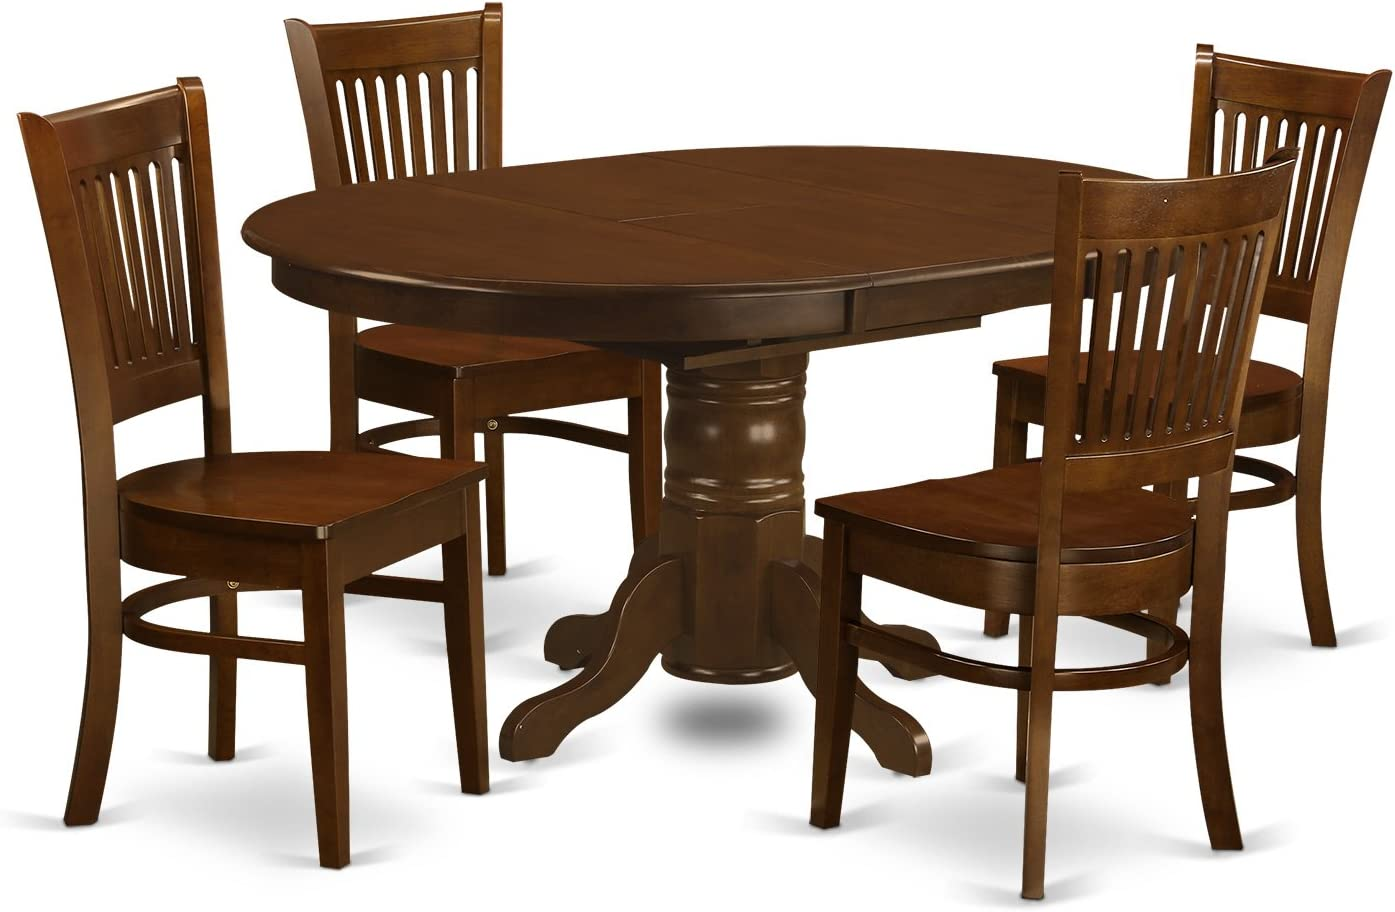 KEVA5-ESP-W 5 Pc set Kenley Dining Table with a Leaf and 4 Wood Kitchen Chairs